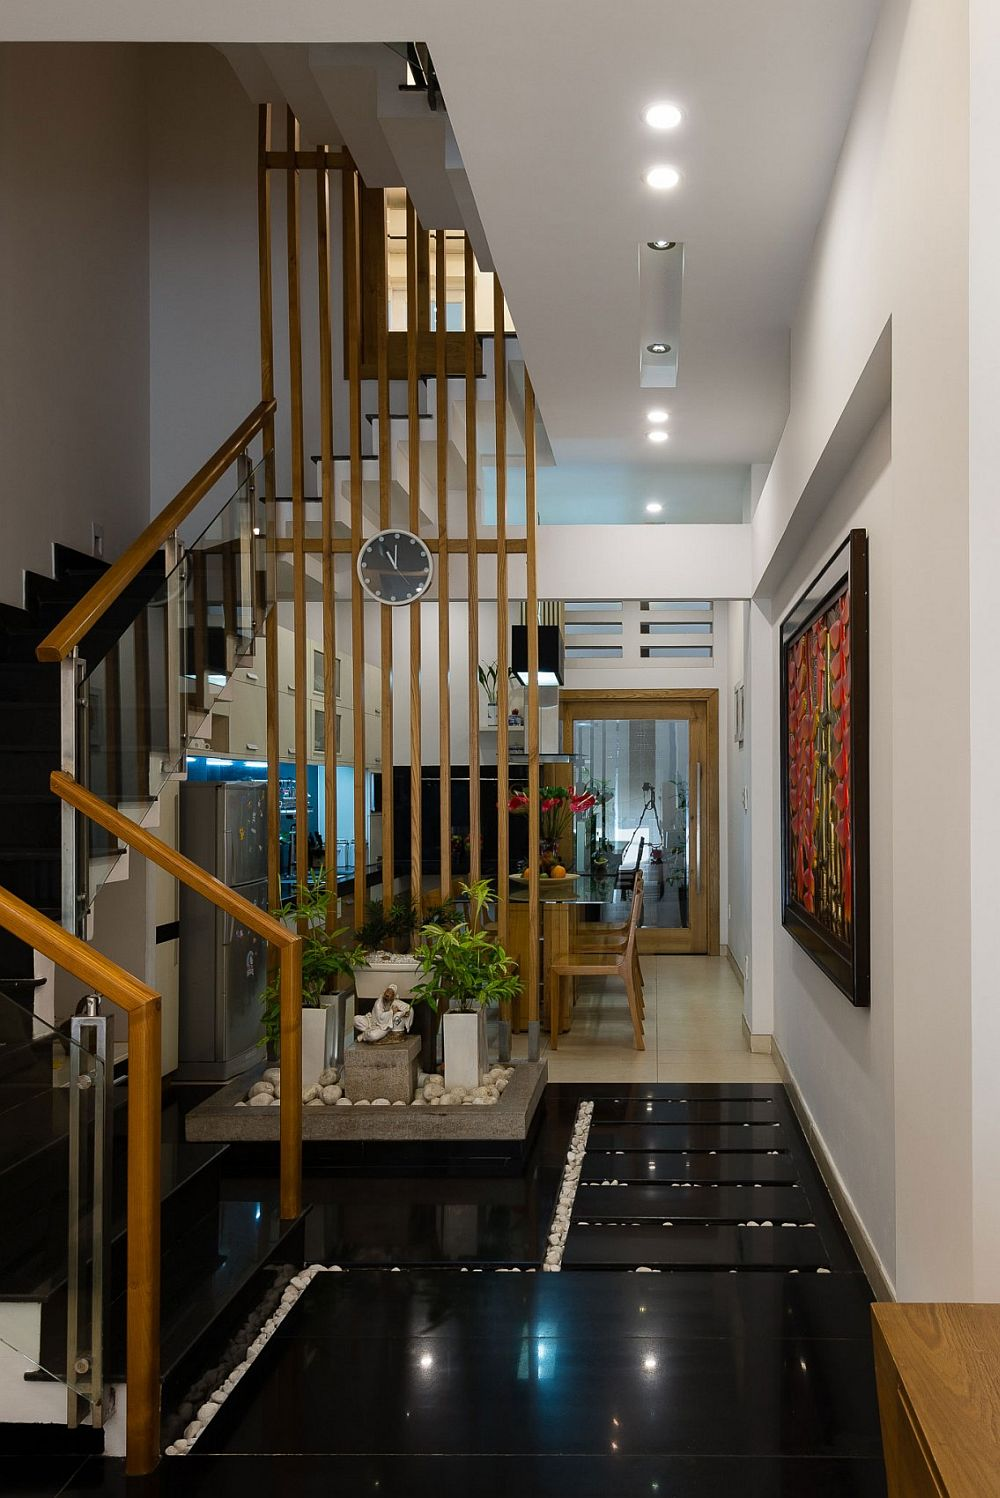 Small indoor garden feature with a light well above creates a refreshing ambiance indoors